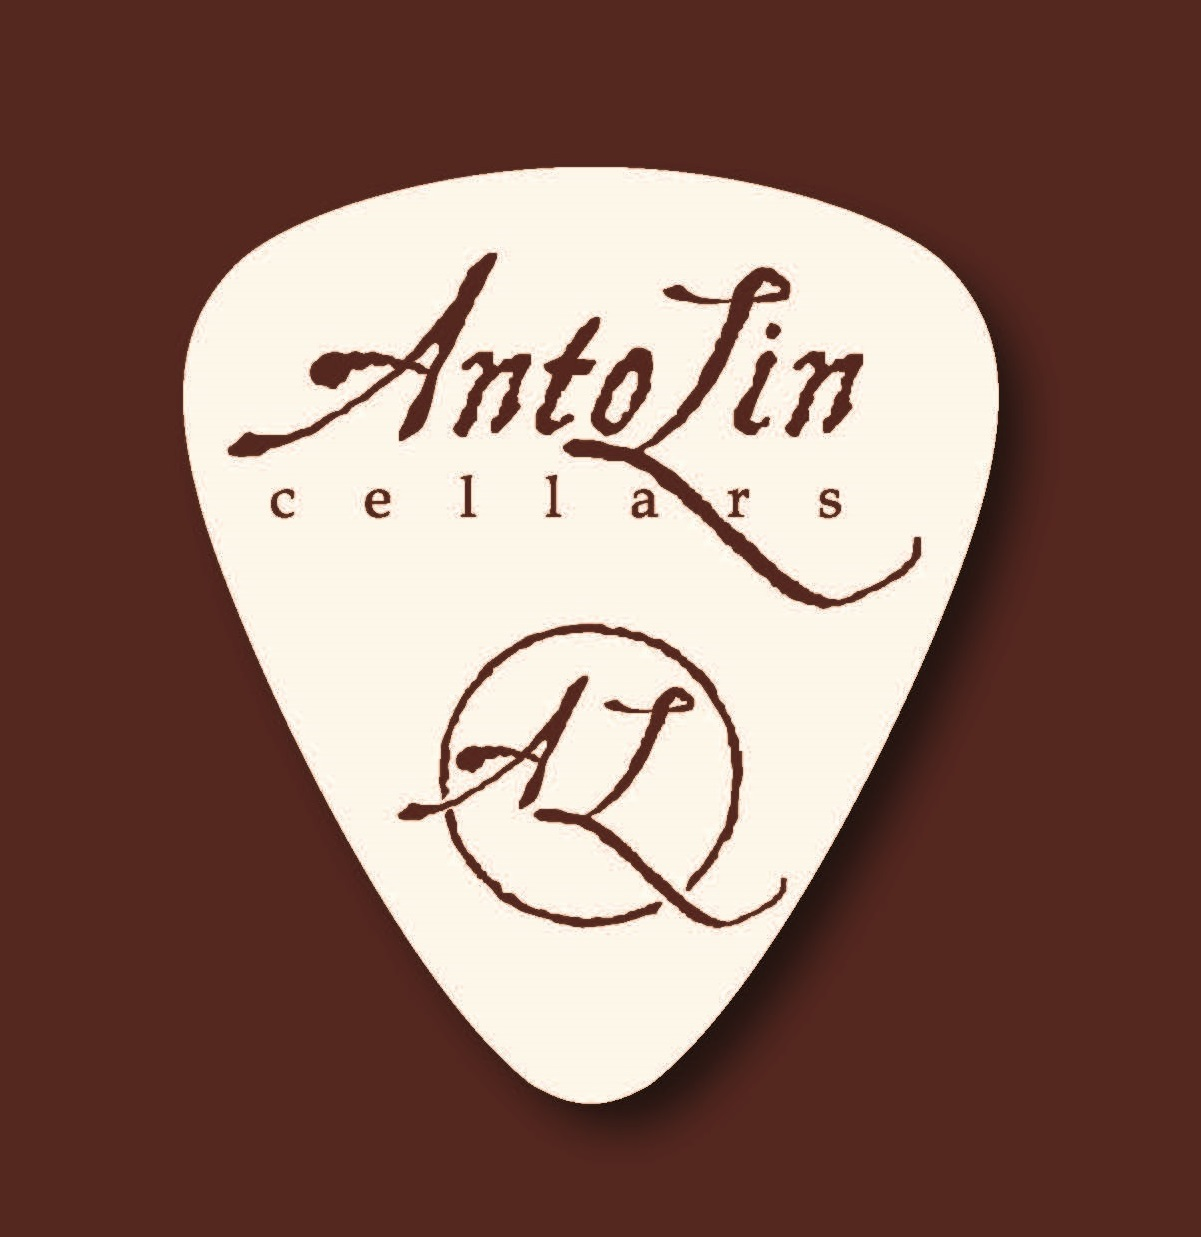 ALC CC Photo Guitar Pick Cabernet Background Crop B - AntoLin Cellars presents Lunar Boot with special guest Tony Haralson